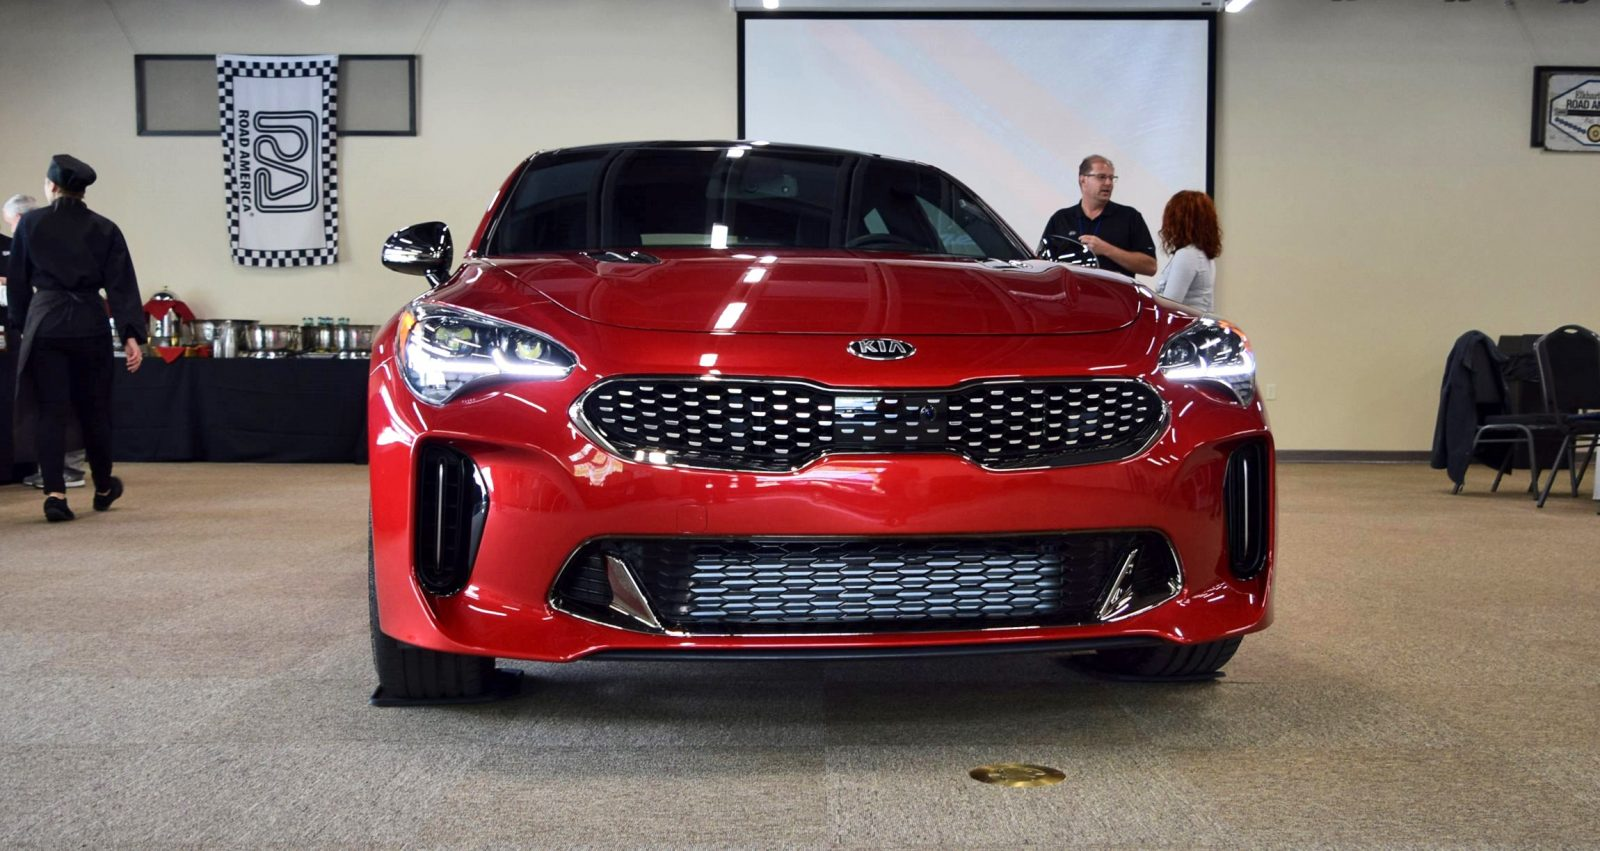 2018 Kia Stinger Gt Awd 4 8s 167mph Stats Confirmed